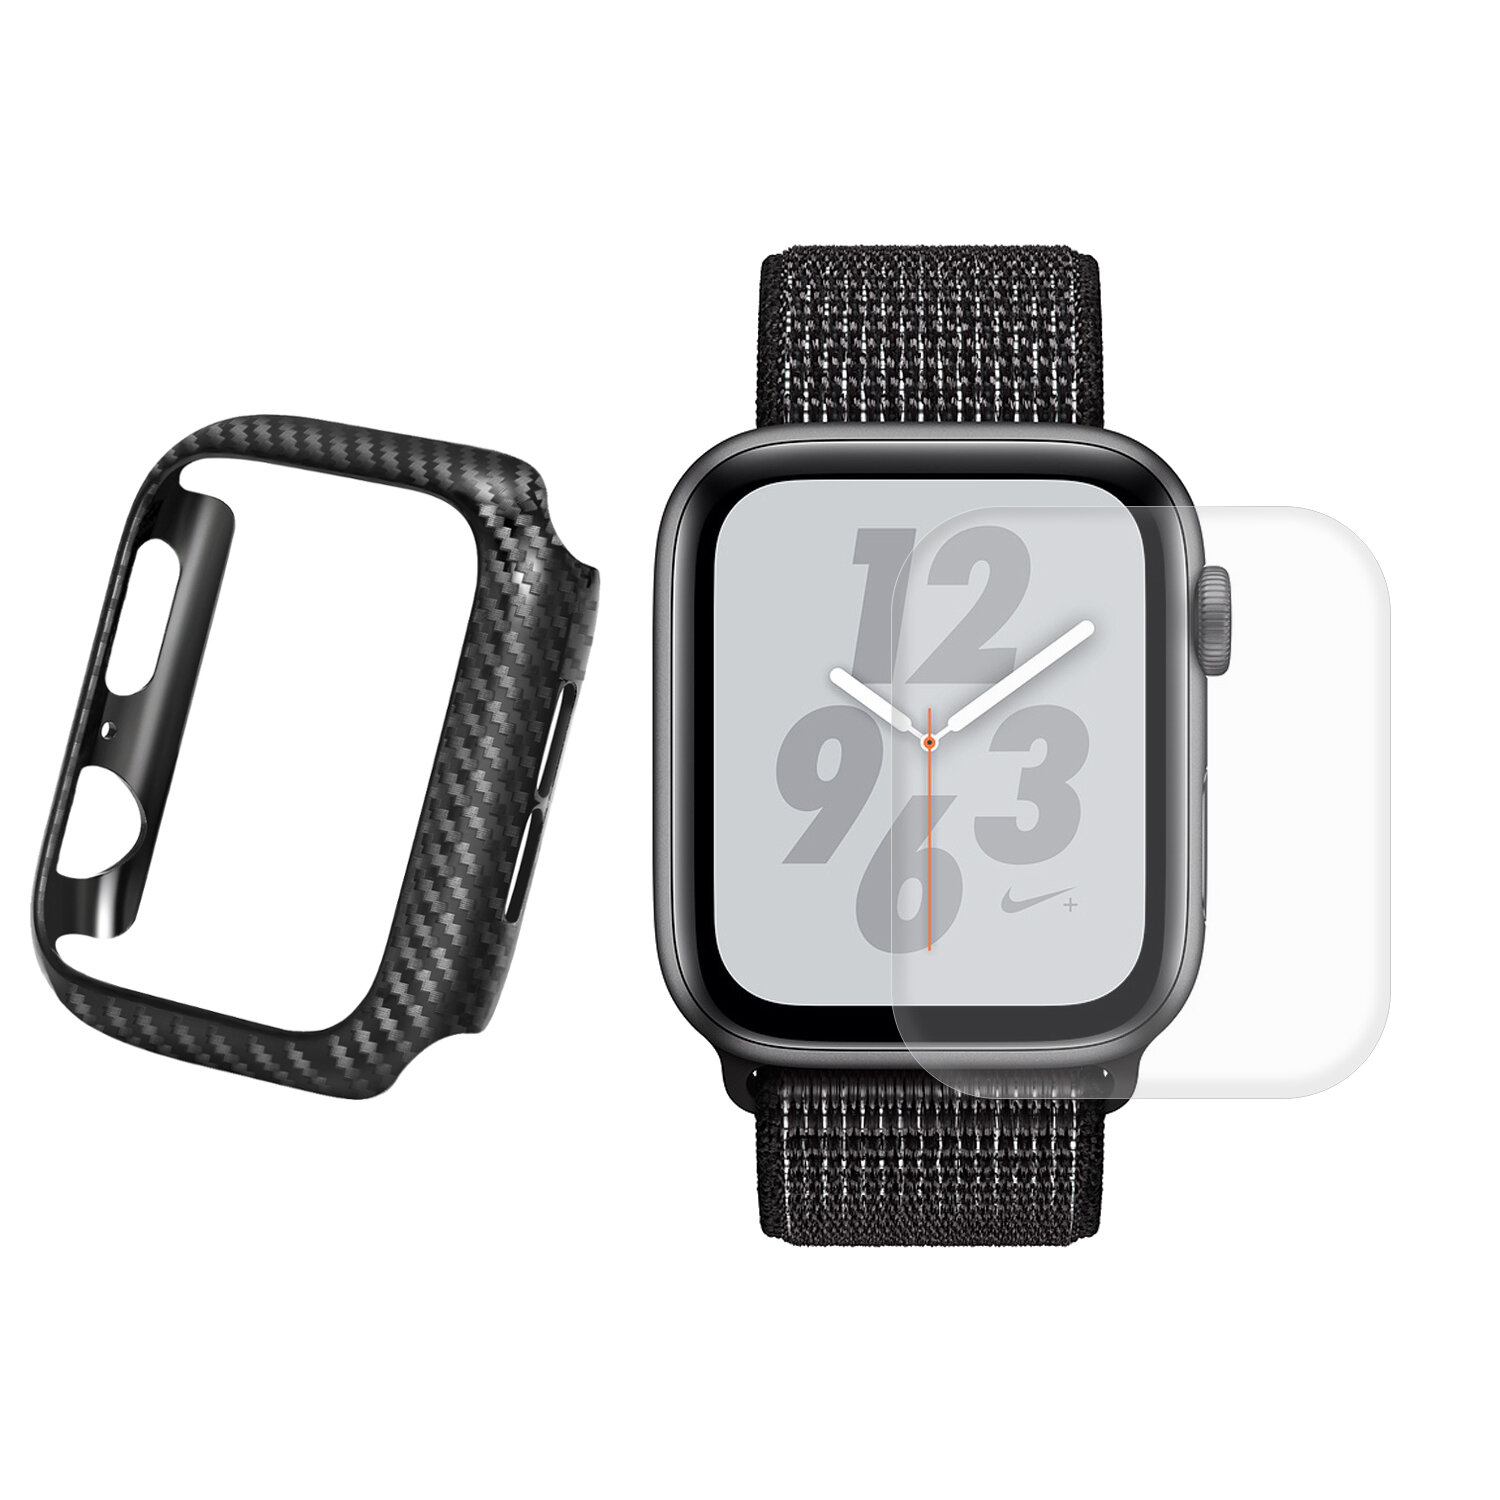 Enkay Carbon Fiber Watch Cover+3D Curved Edge Hot Bending Watch Screen Protector For Apple Watch Series 4 44mm